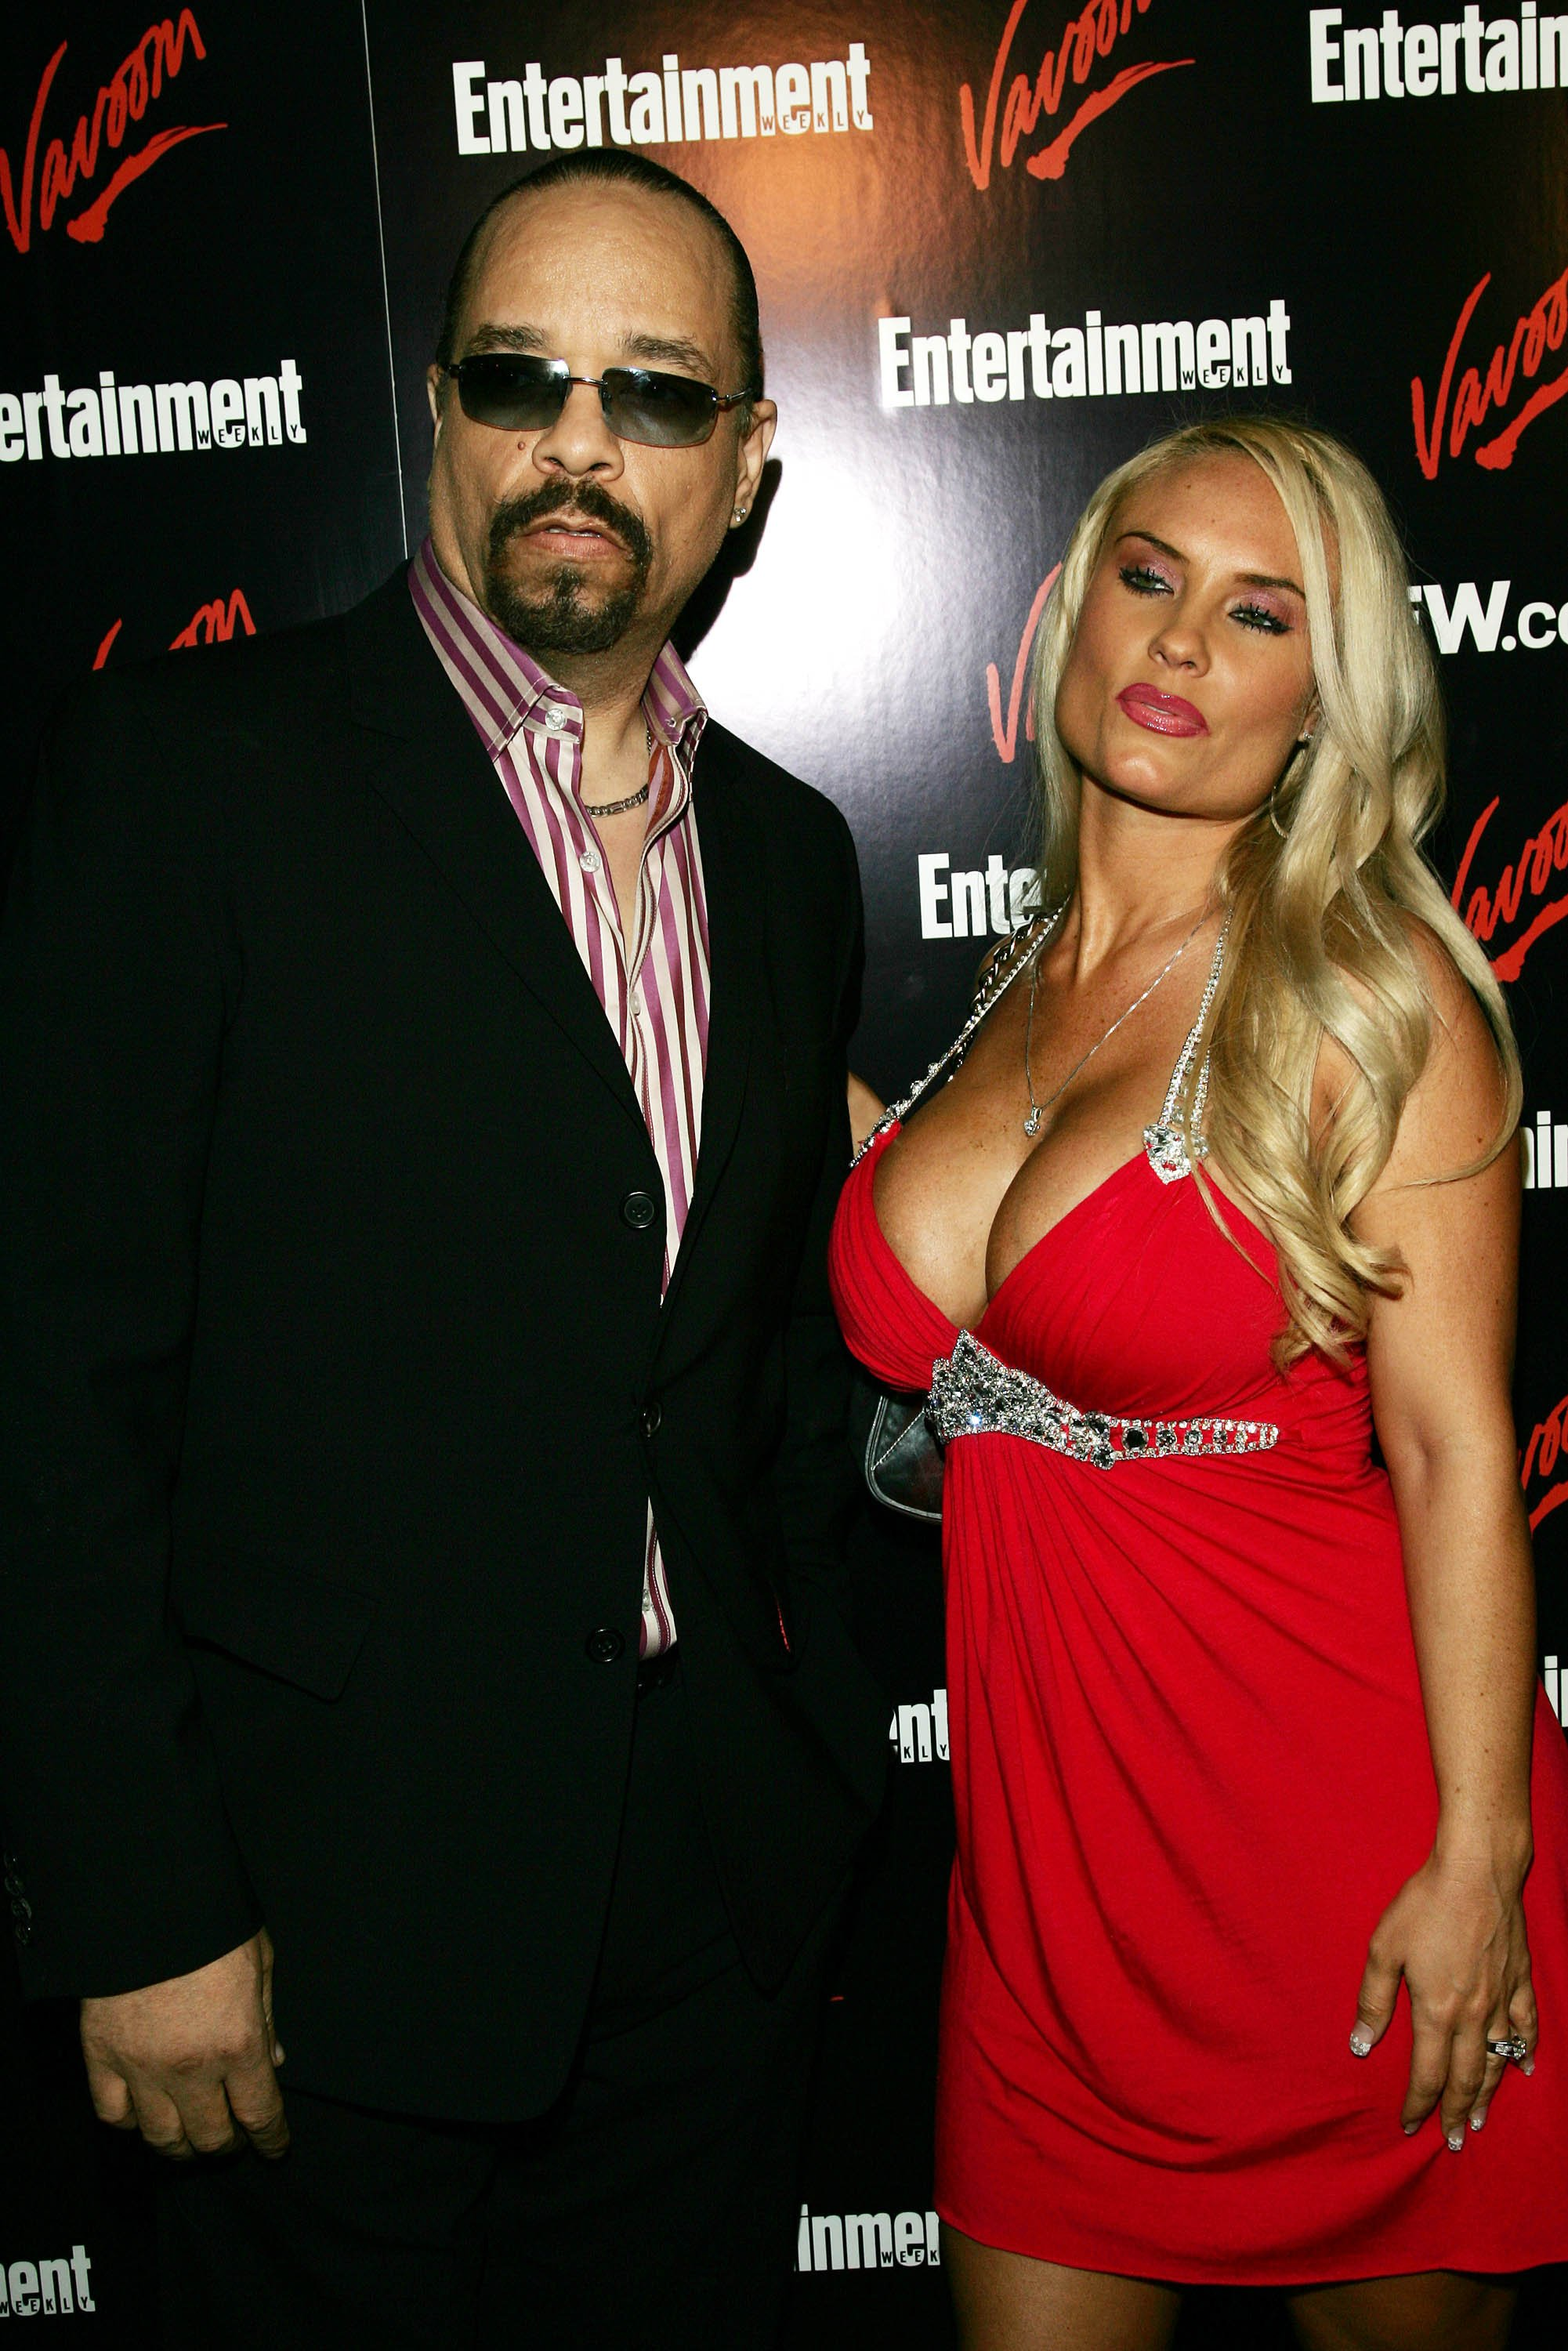 NEW YORK - MAY 15: Rapper, actor Ice T and wife Coco attend the Upfront Party hosted by Entertainment Weekly and Vavoom at the Box May 15, 2007 in New York City. (Photo by Evan Agostini/Getty Images)